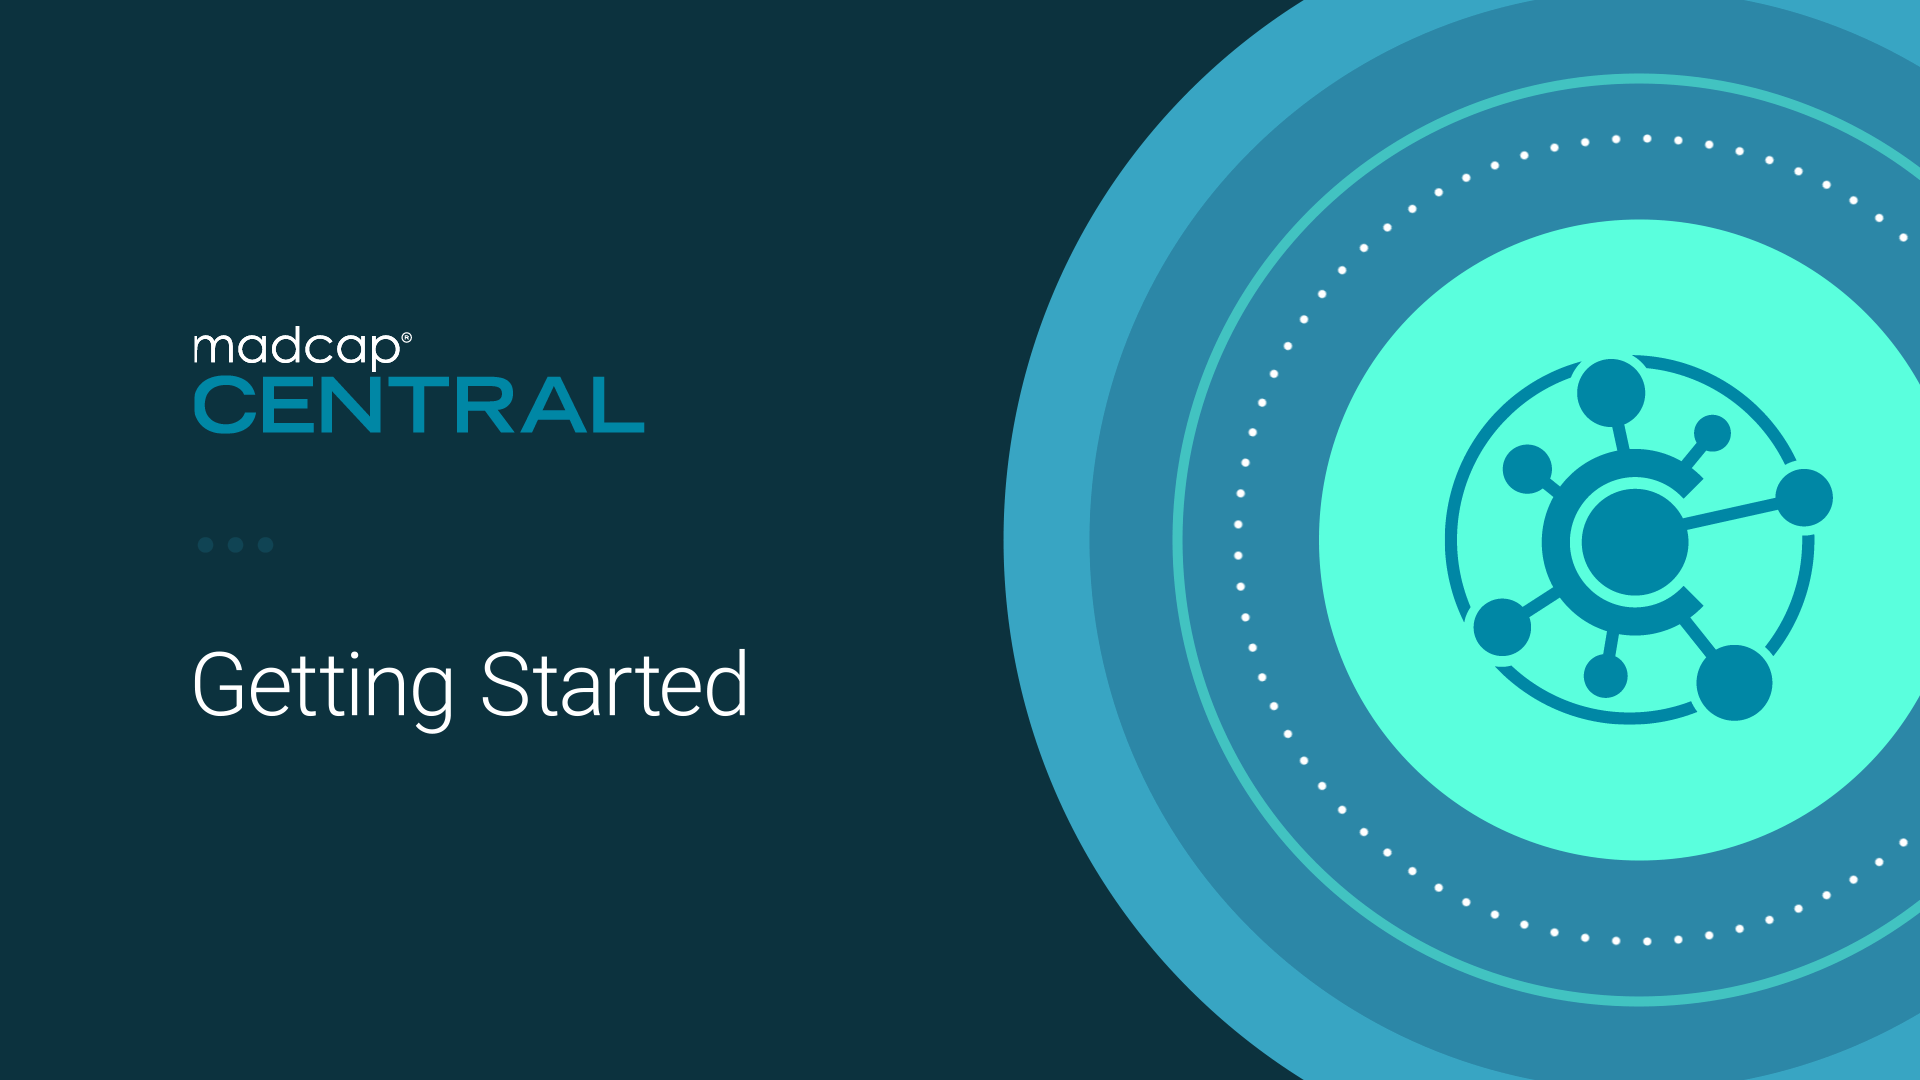 Video: Getting Started with MadCap Central